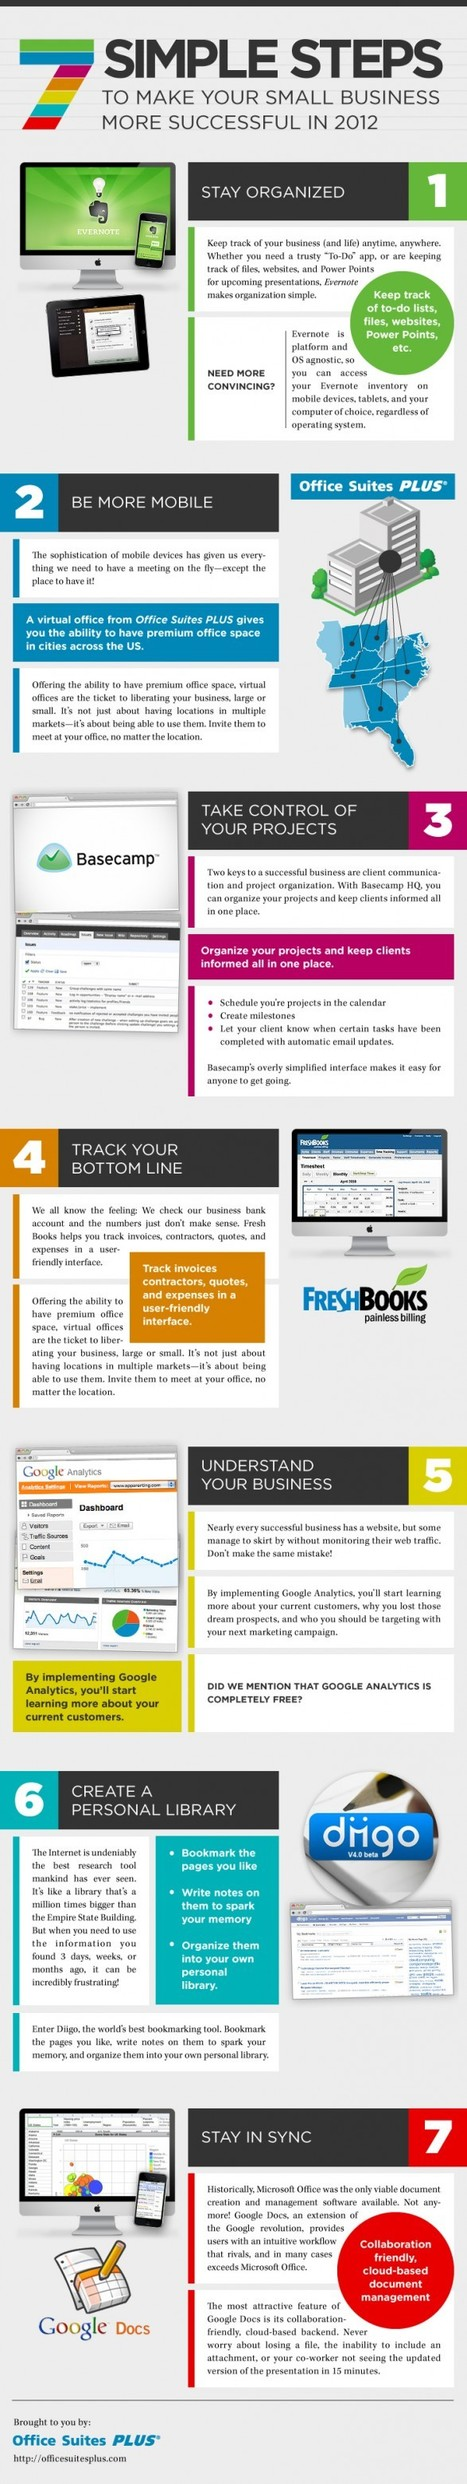 7 Steps to Make Small Business more Successful [Infographic] | Personal Branding Using Scoopit | Scoop.it